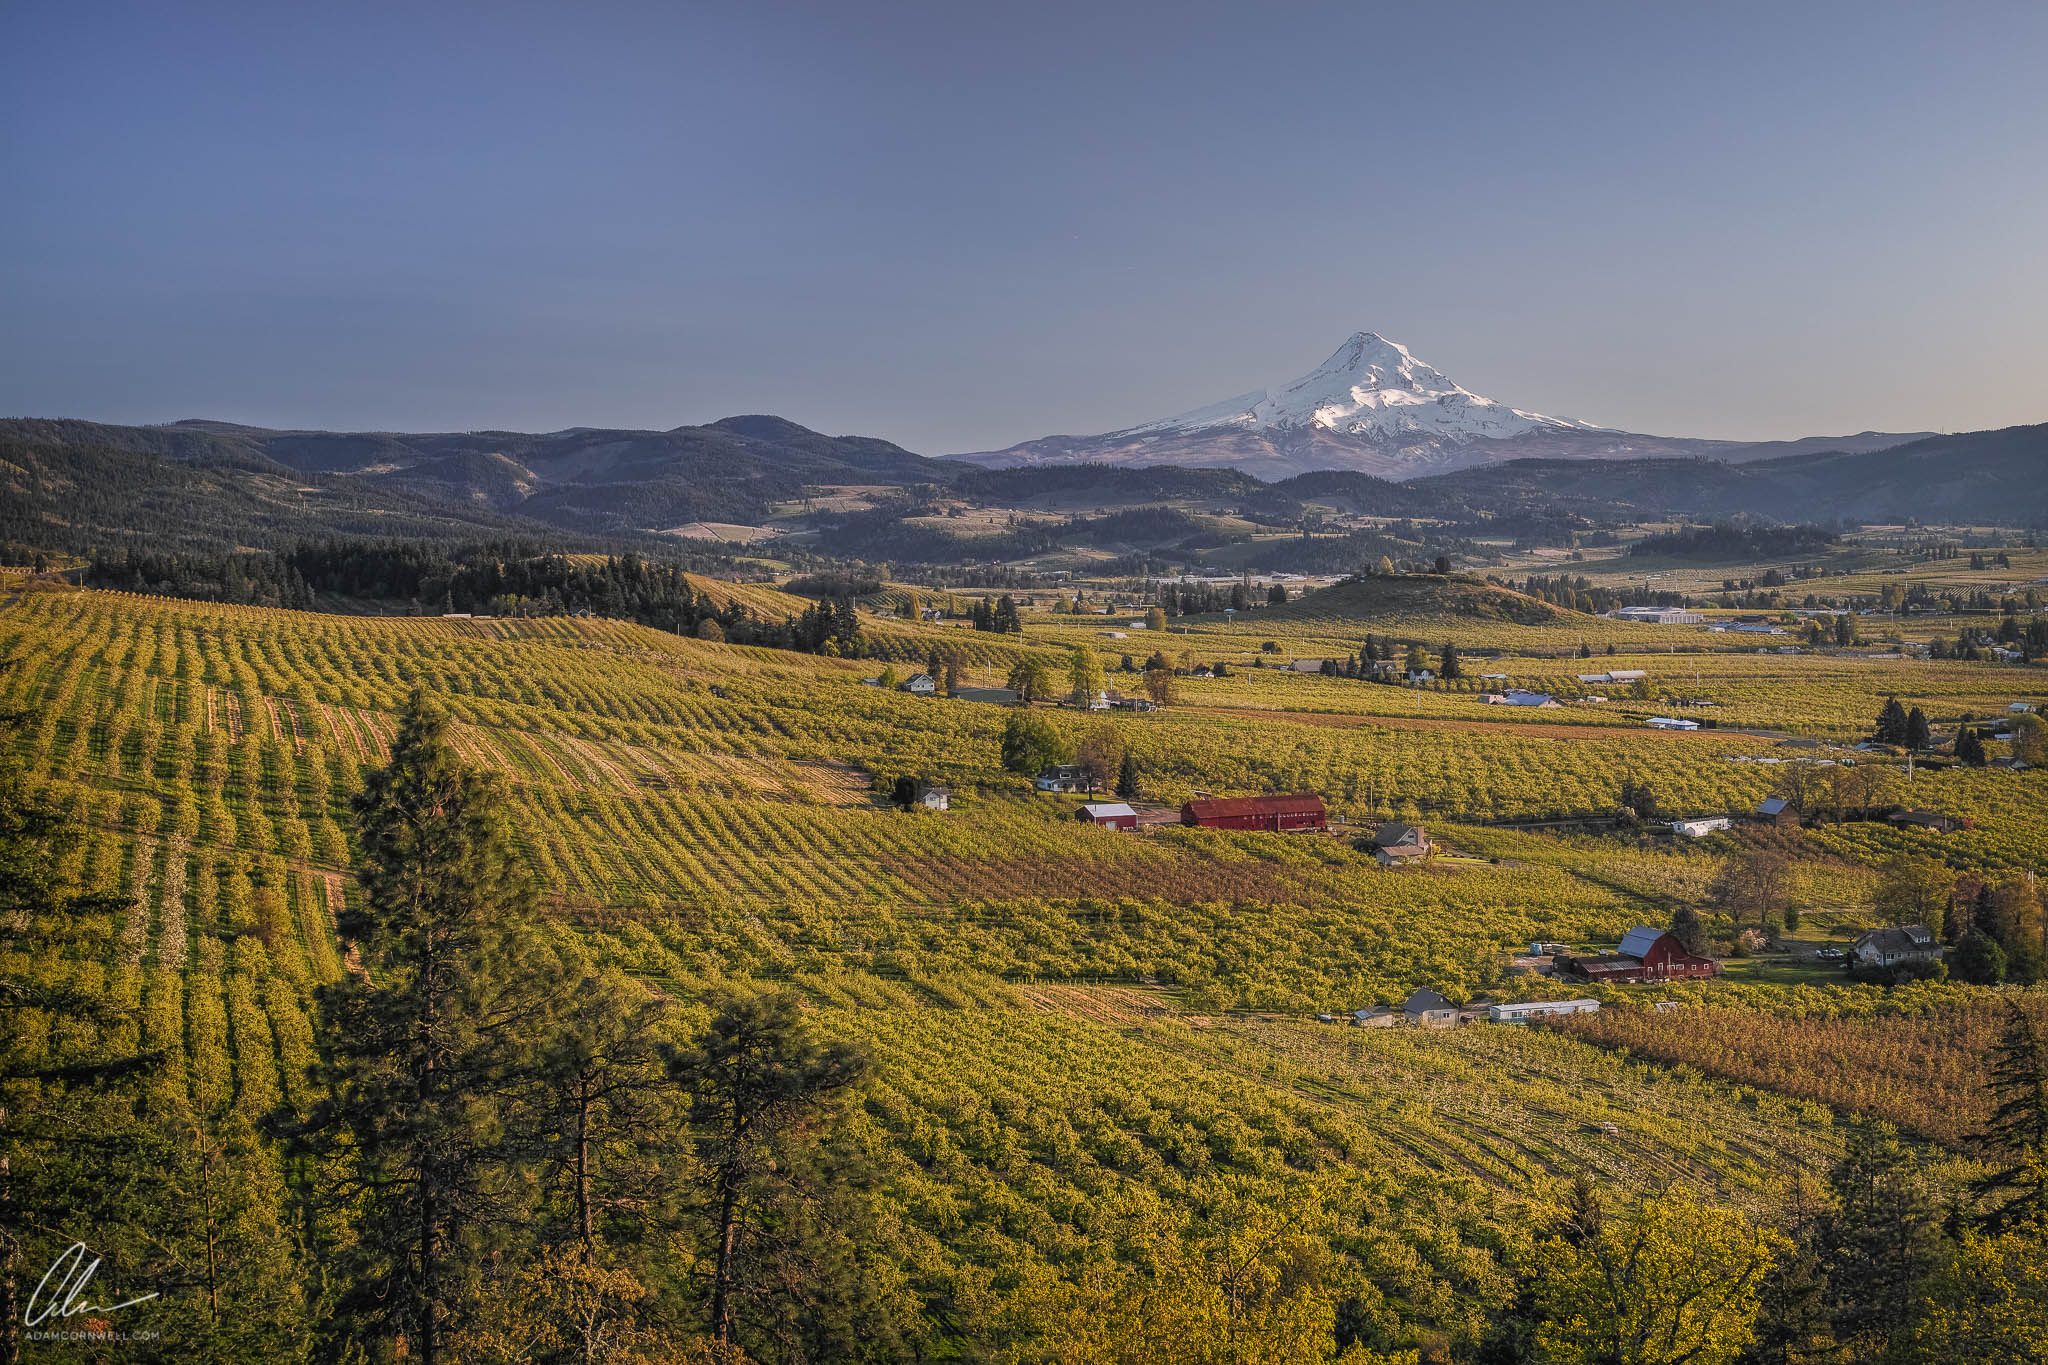 Mt. Hood & Orchards